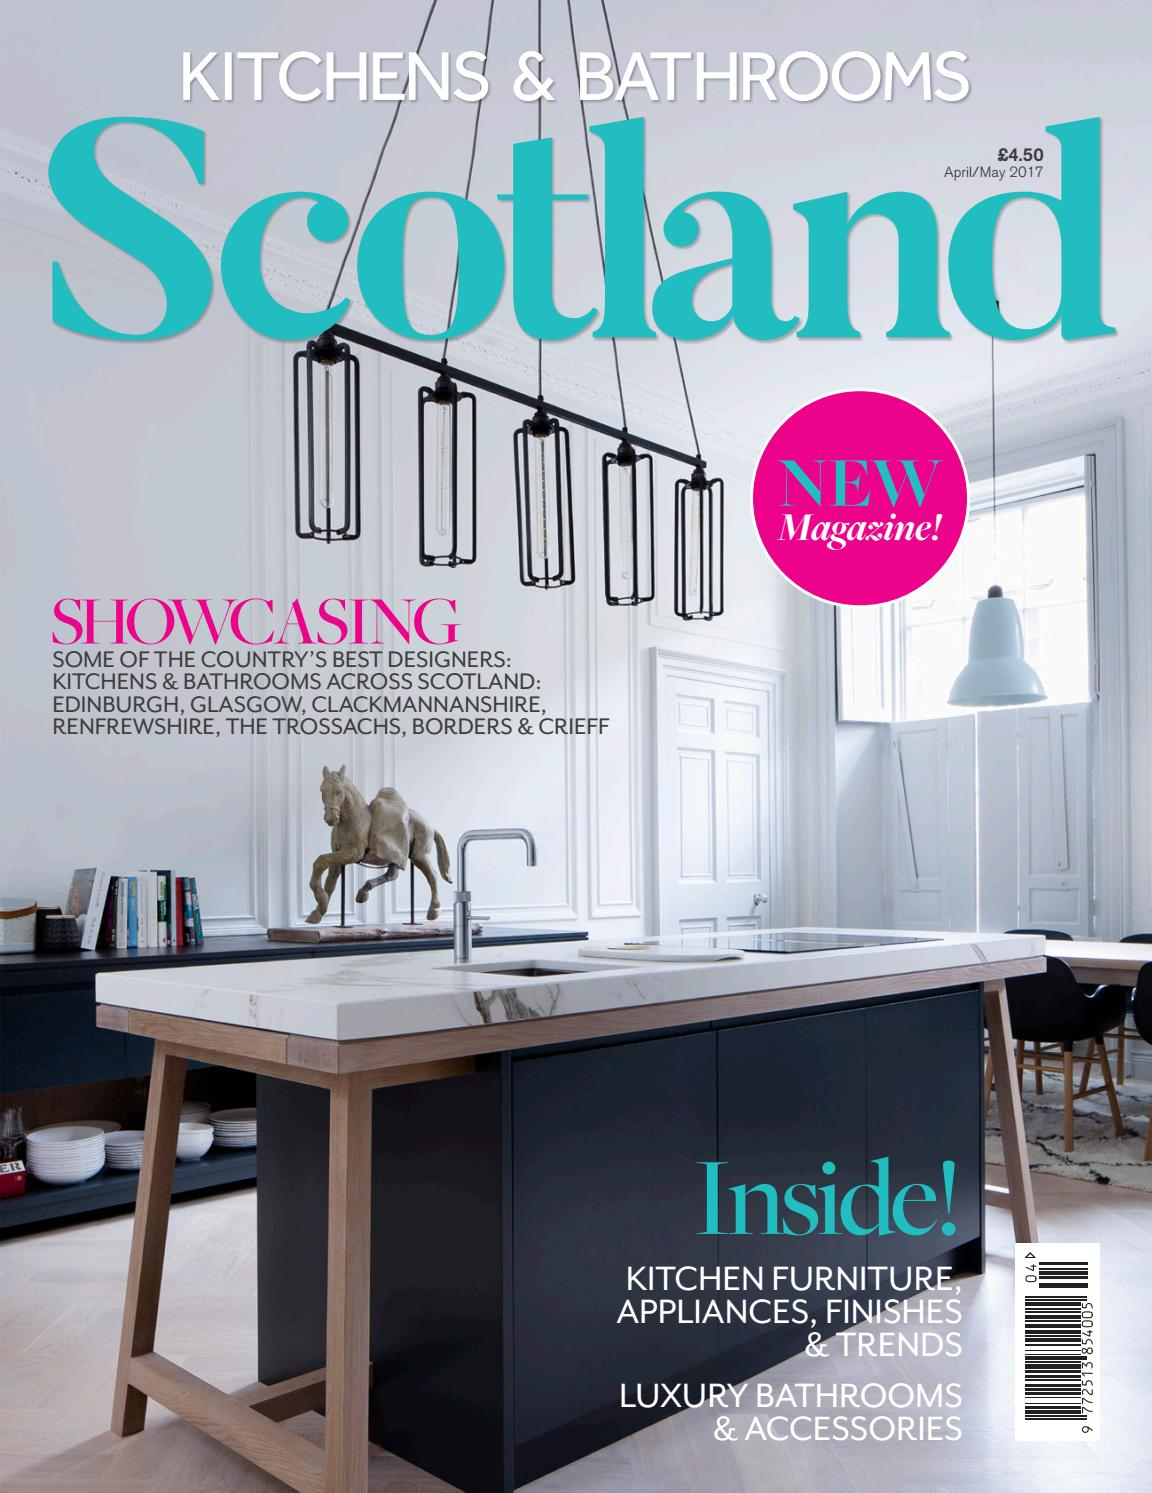 Bagno Design Edinburgh Kitchens Bathrooms Scotland